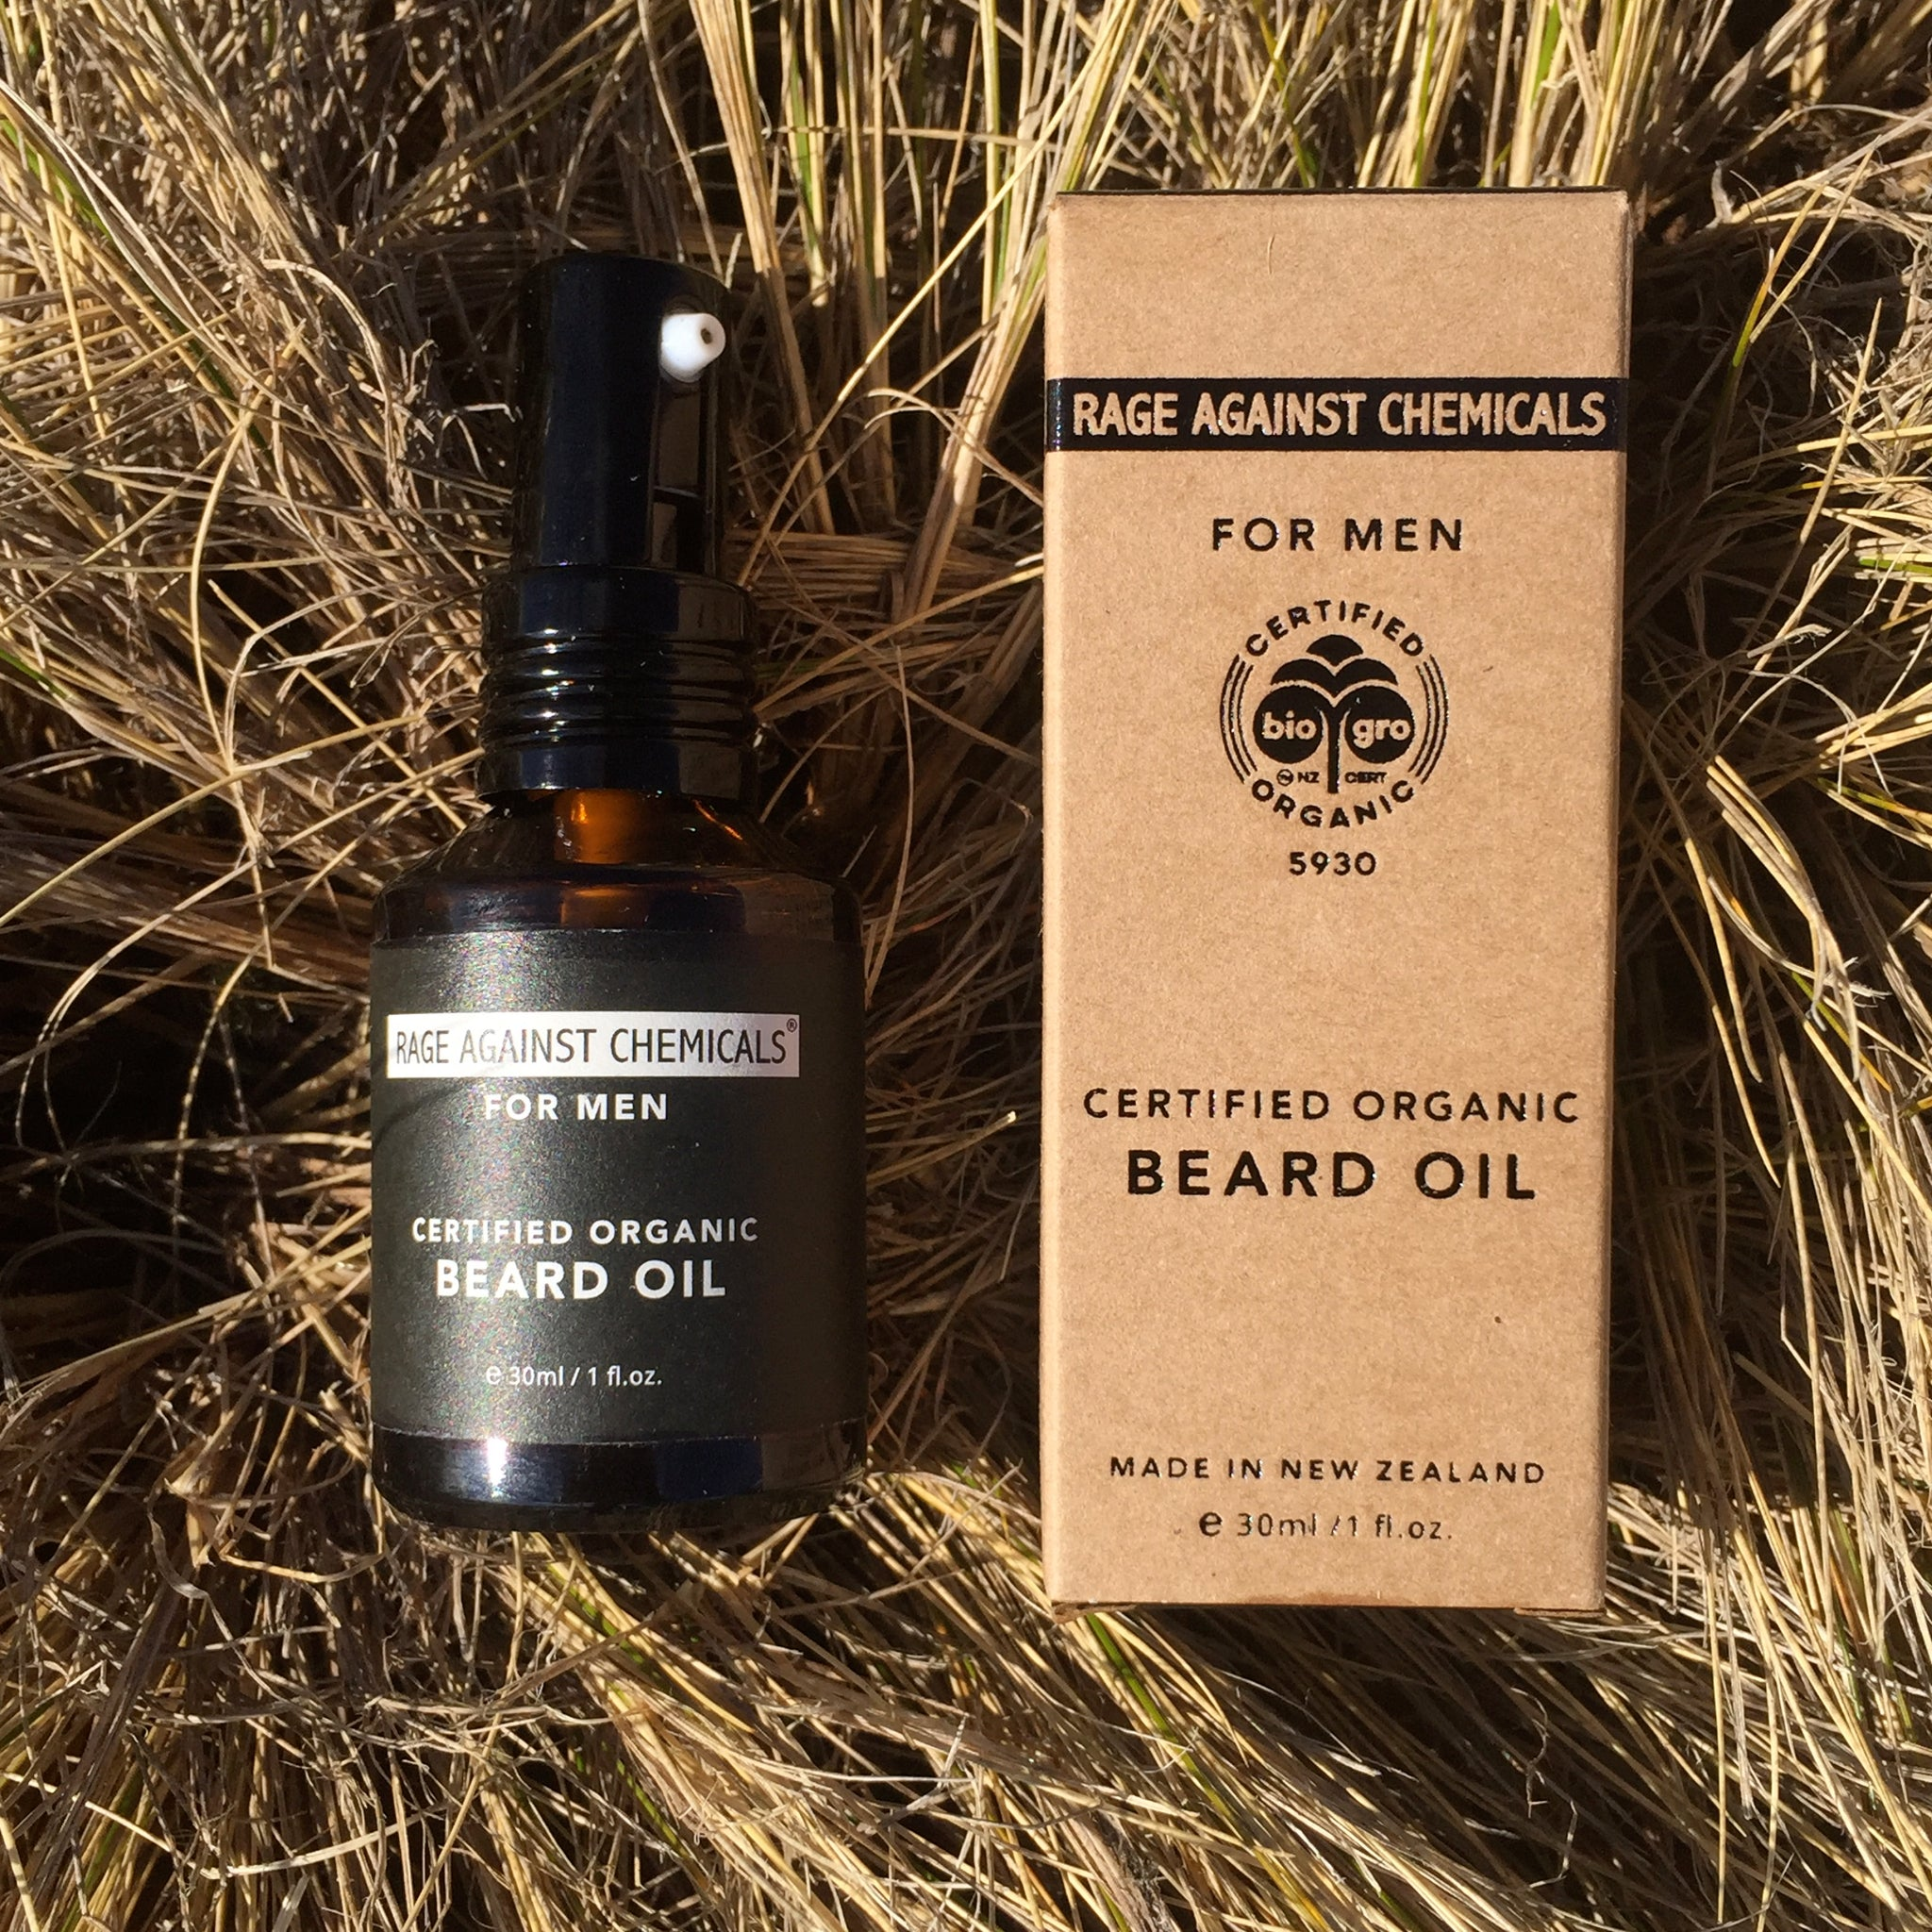 Beard Oil - Organic - Rage Against Chemicals - Condition your Beard and prevent itchy, flaky skin beneath your Beard.